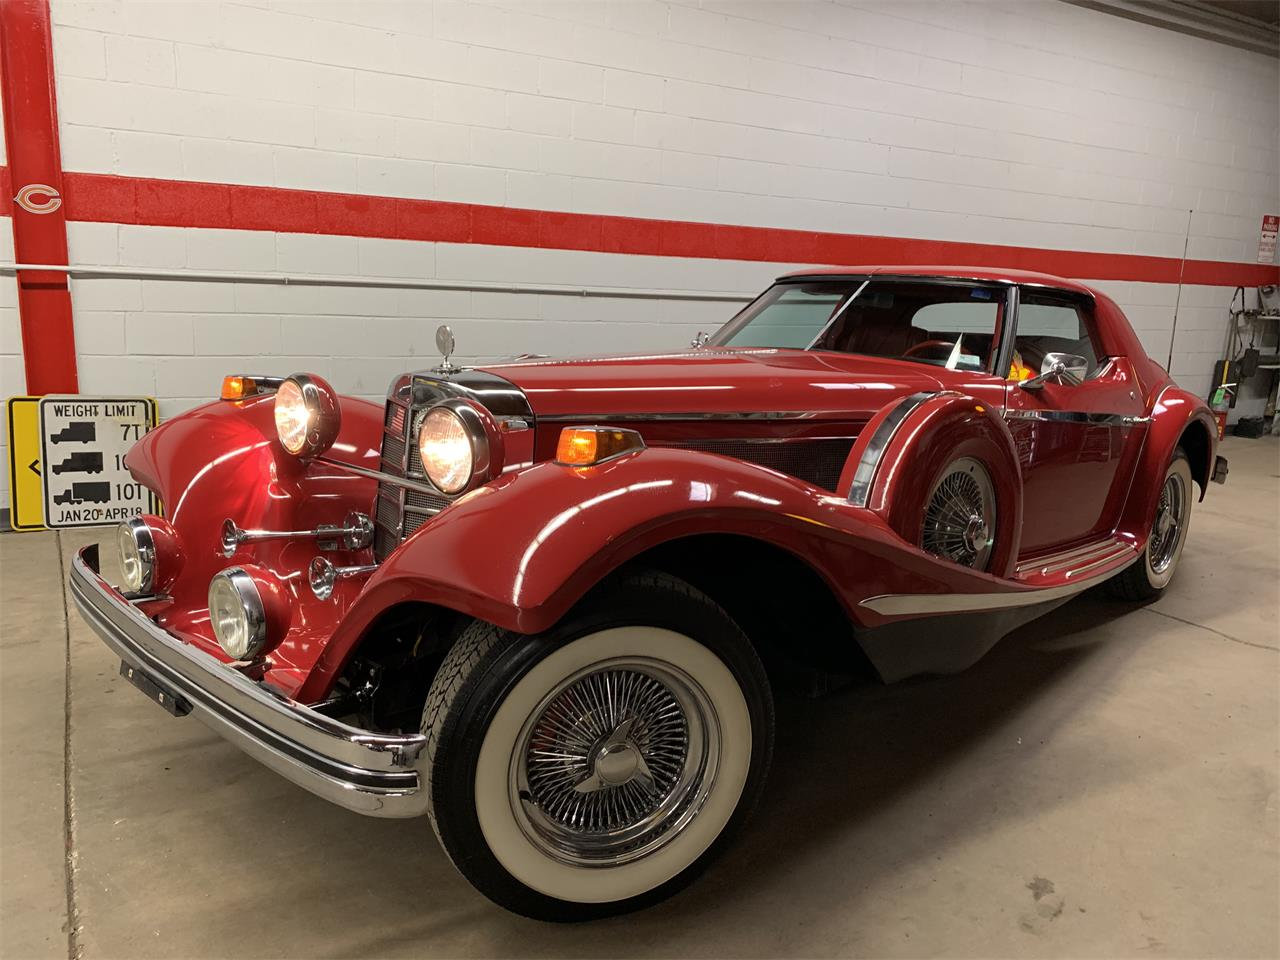 1981 Phillips Berlina for sale in Franklin Park, IL – photo 3